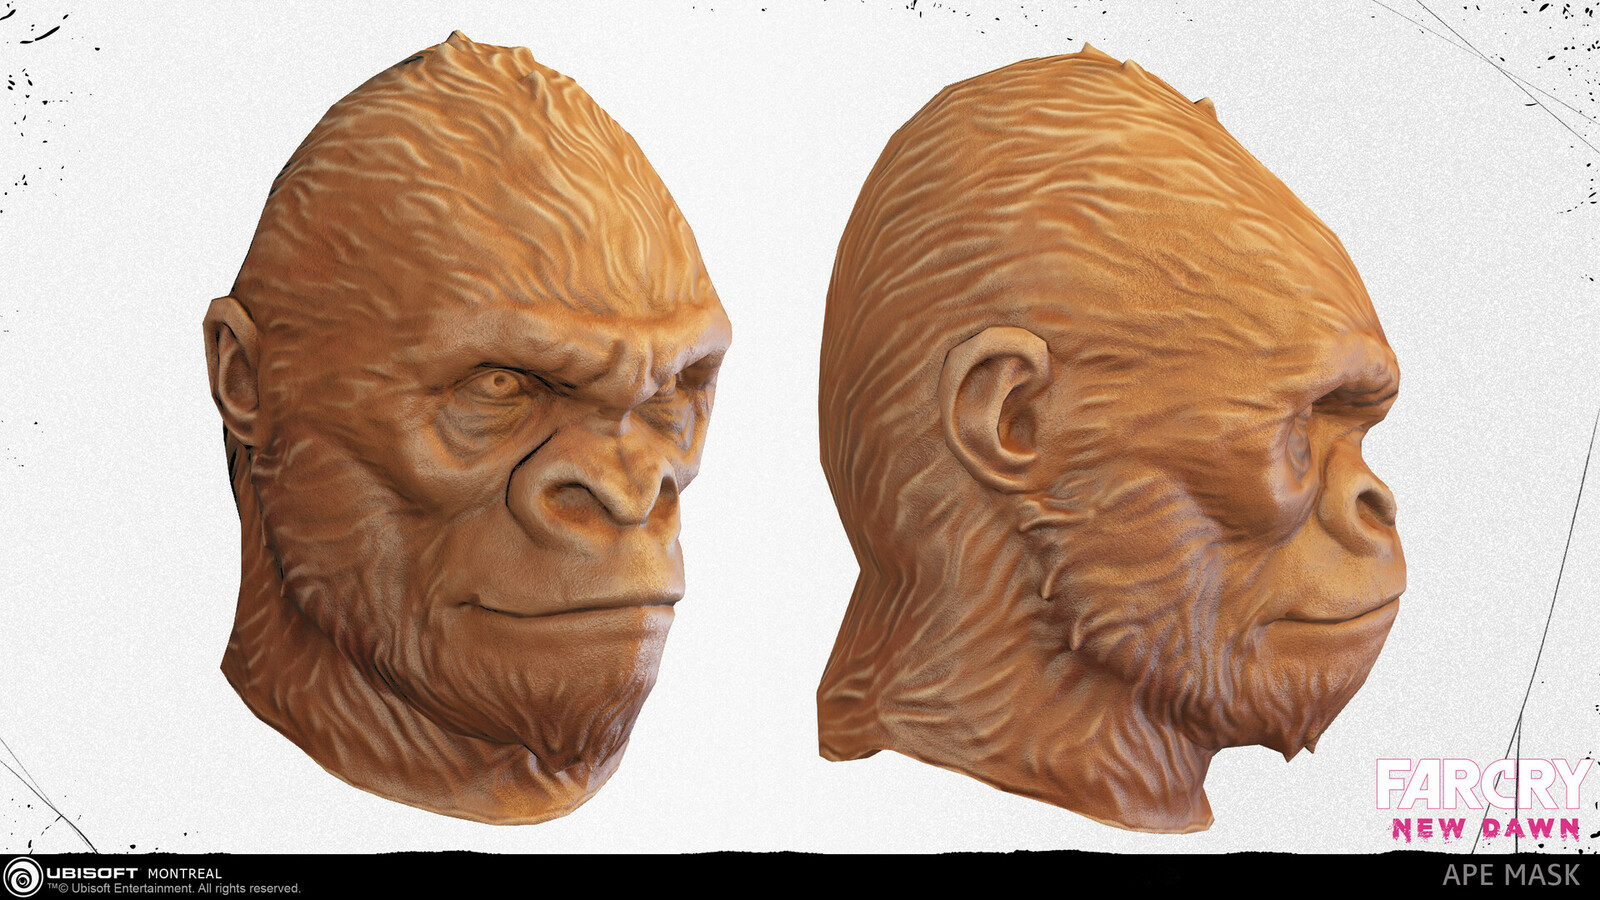 I designed and created the Ape mask